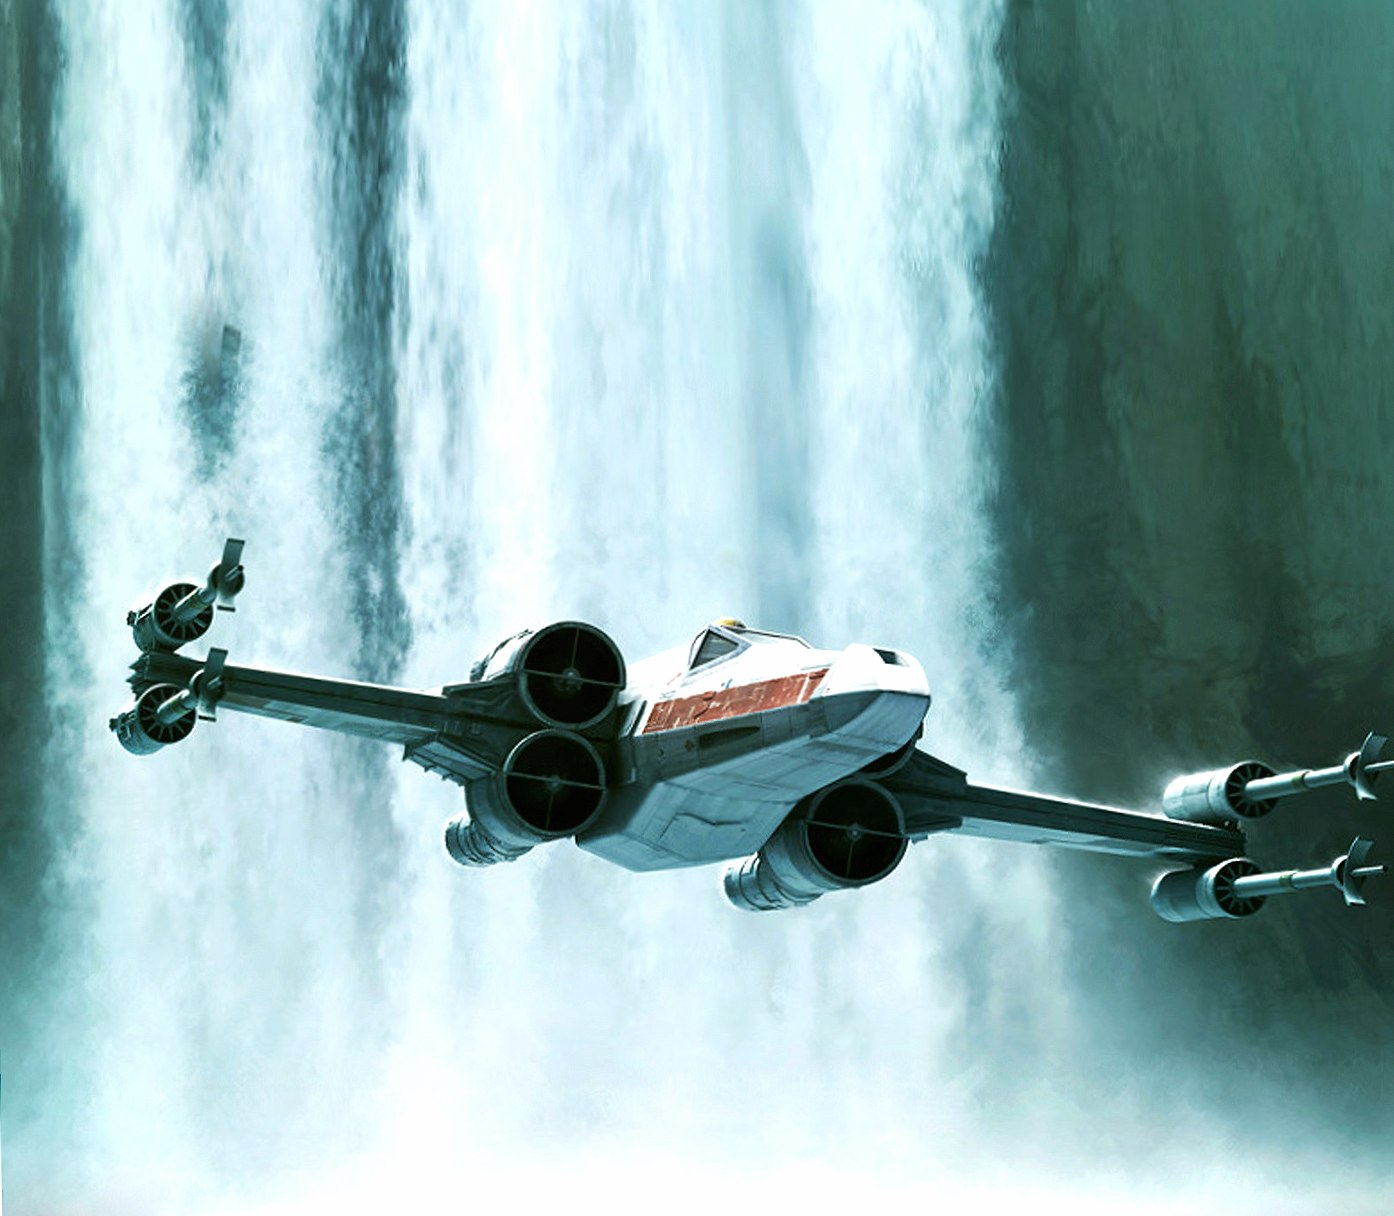 xwing wallpapers HD quality